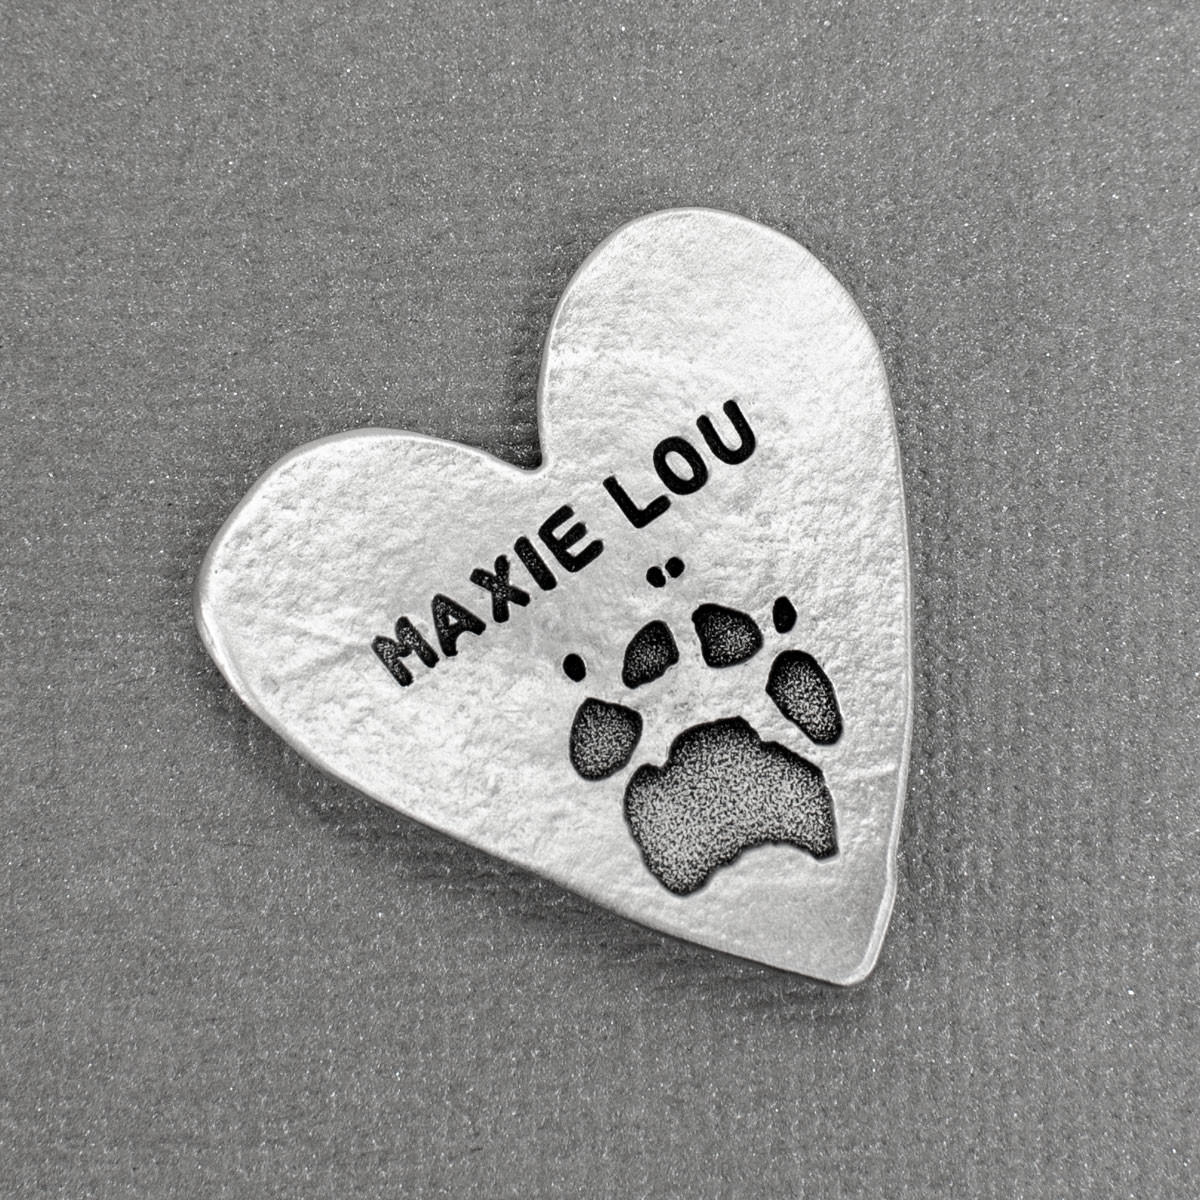 Your pet's paw print etched into a heart pocket token